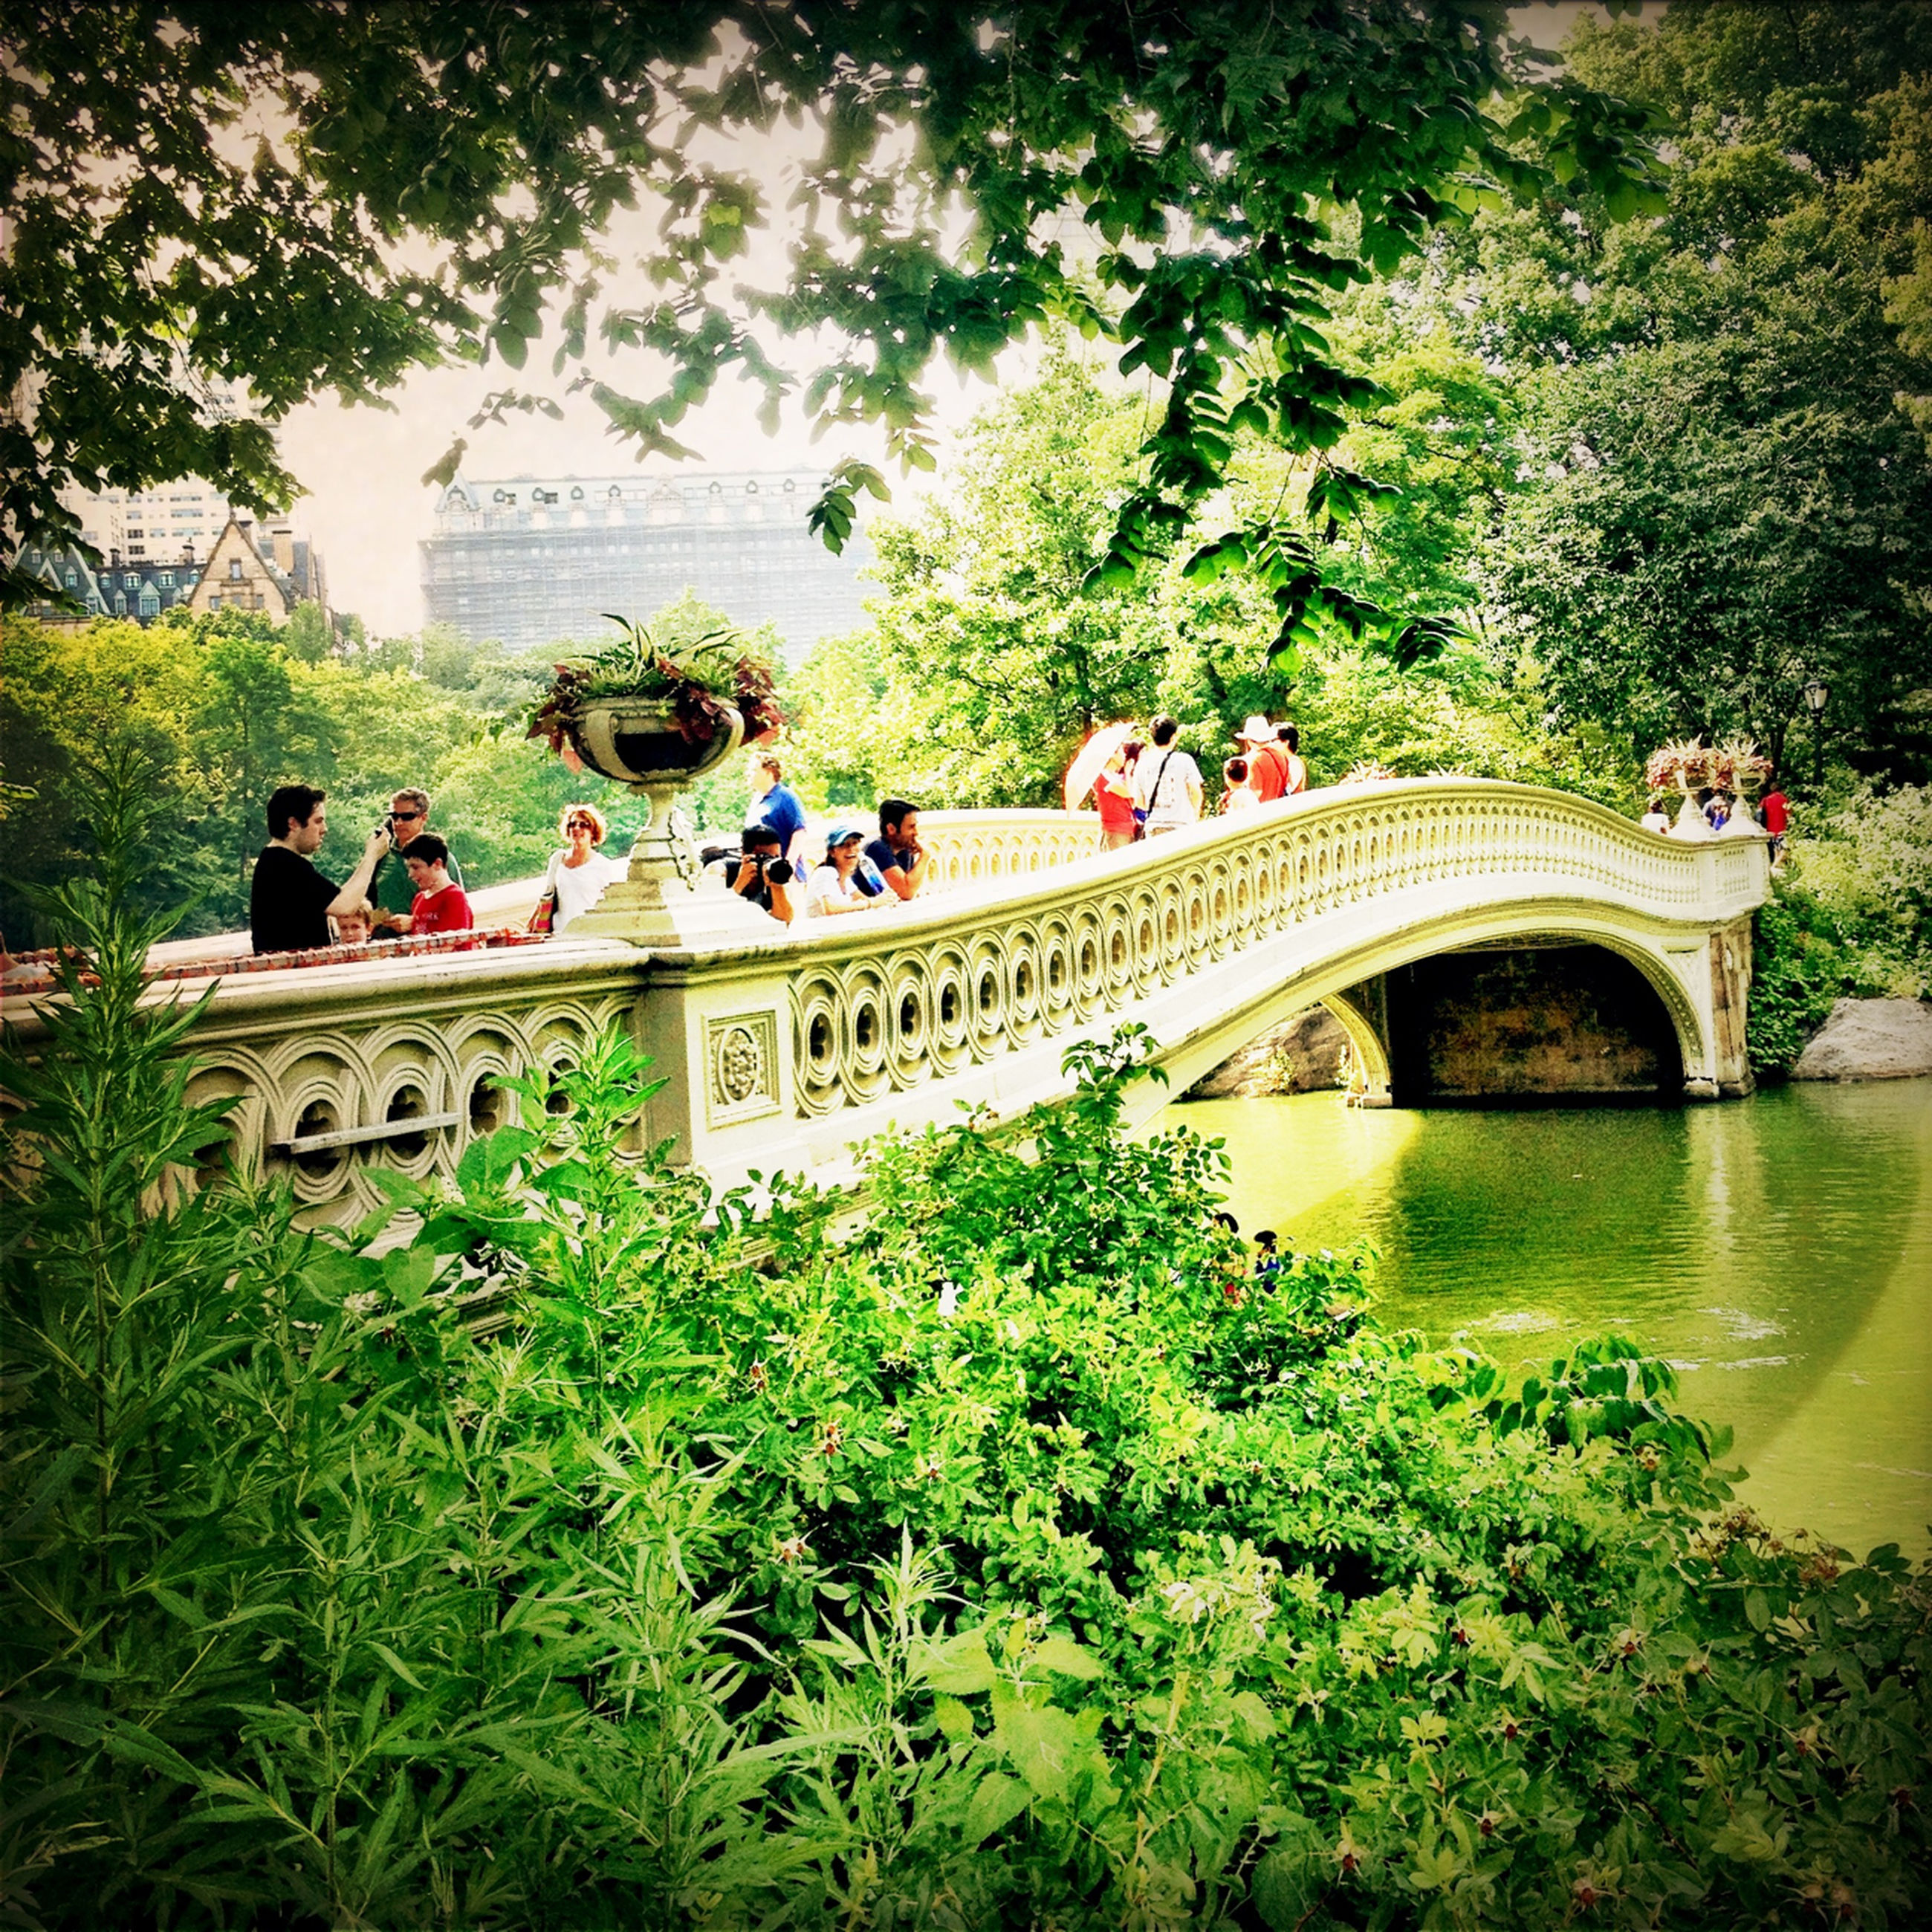 tree, architecture, built structure, lifestyles, large group of people, men, leisure activity, person, bridge - man made structure, connection, water, tourist, arch, green color, river, growth, transportation, travel, tourism